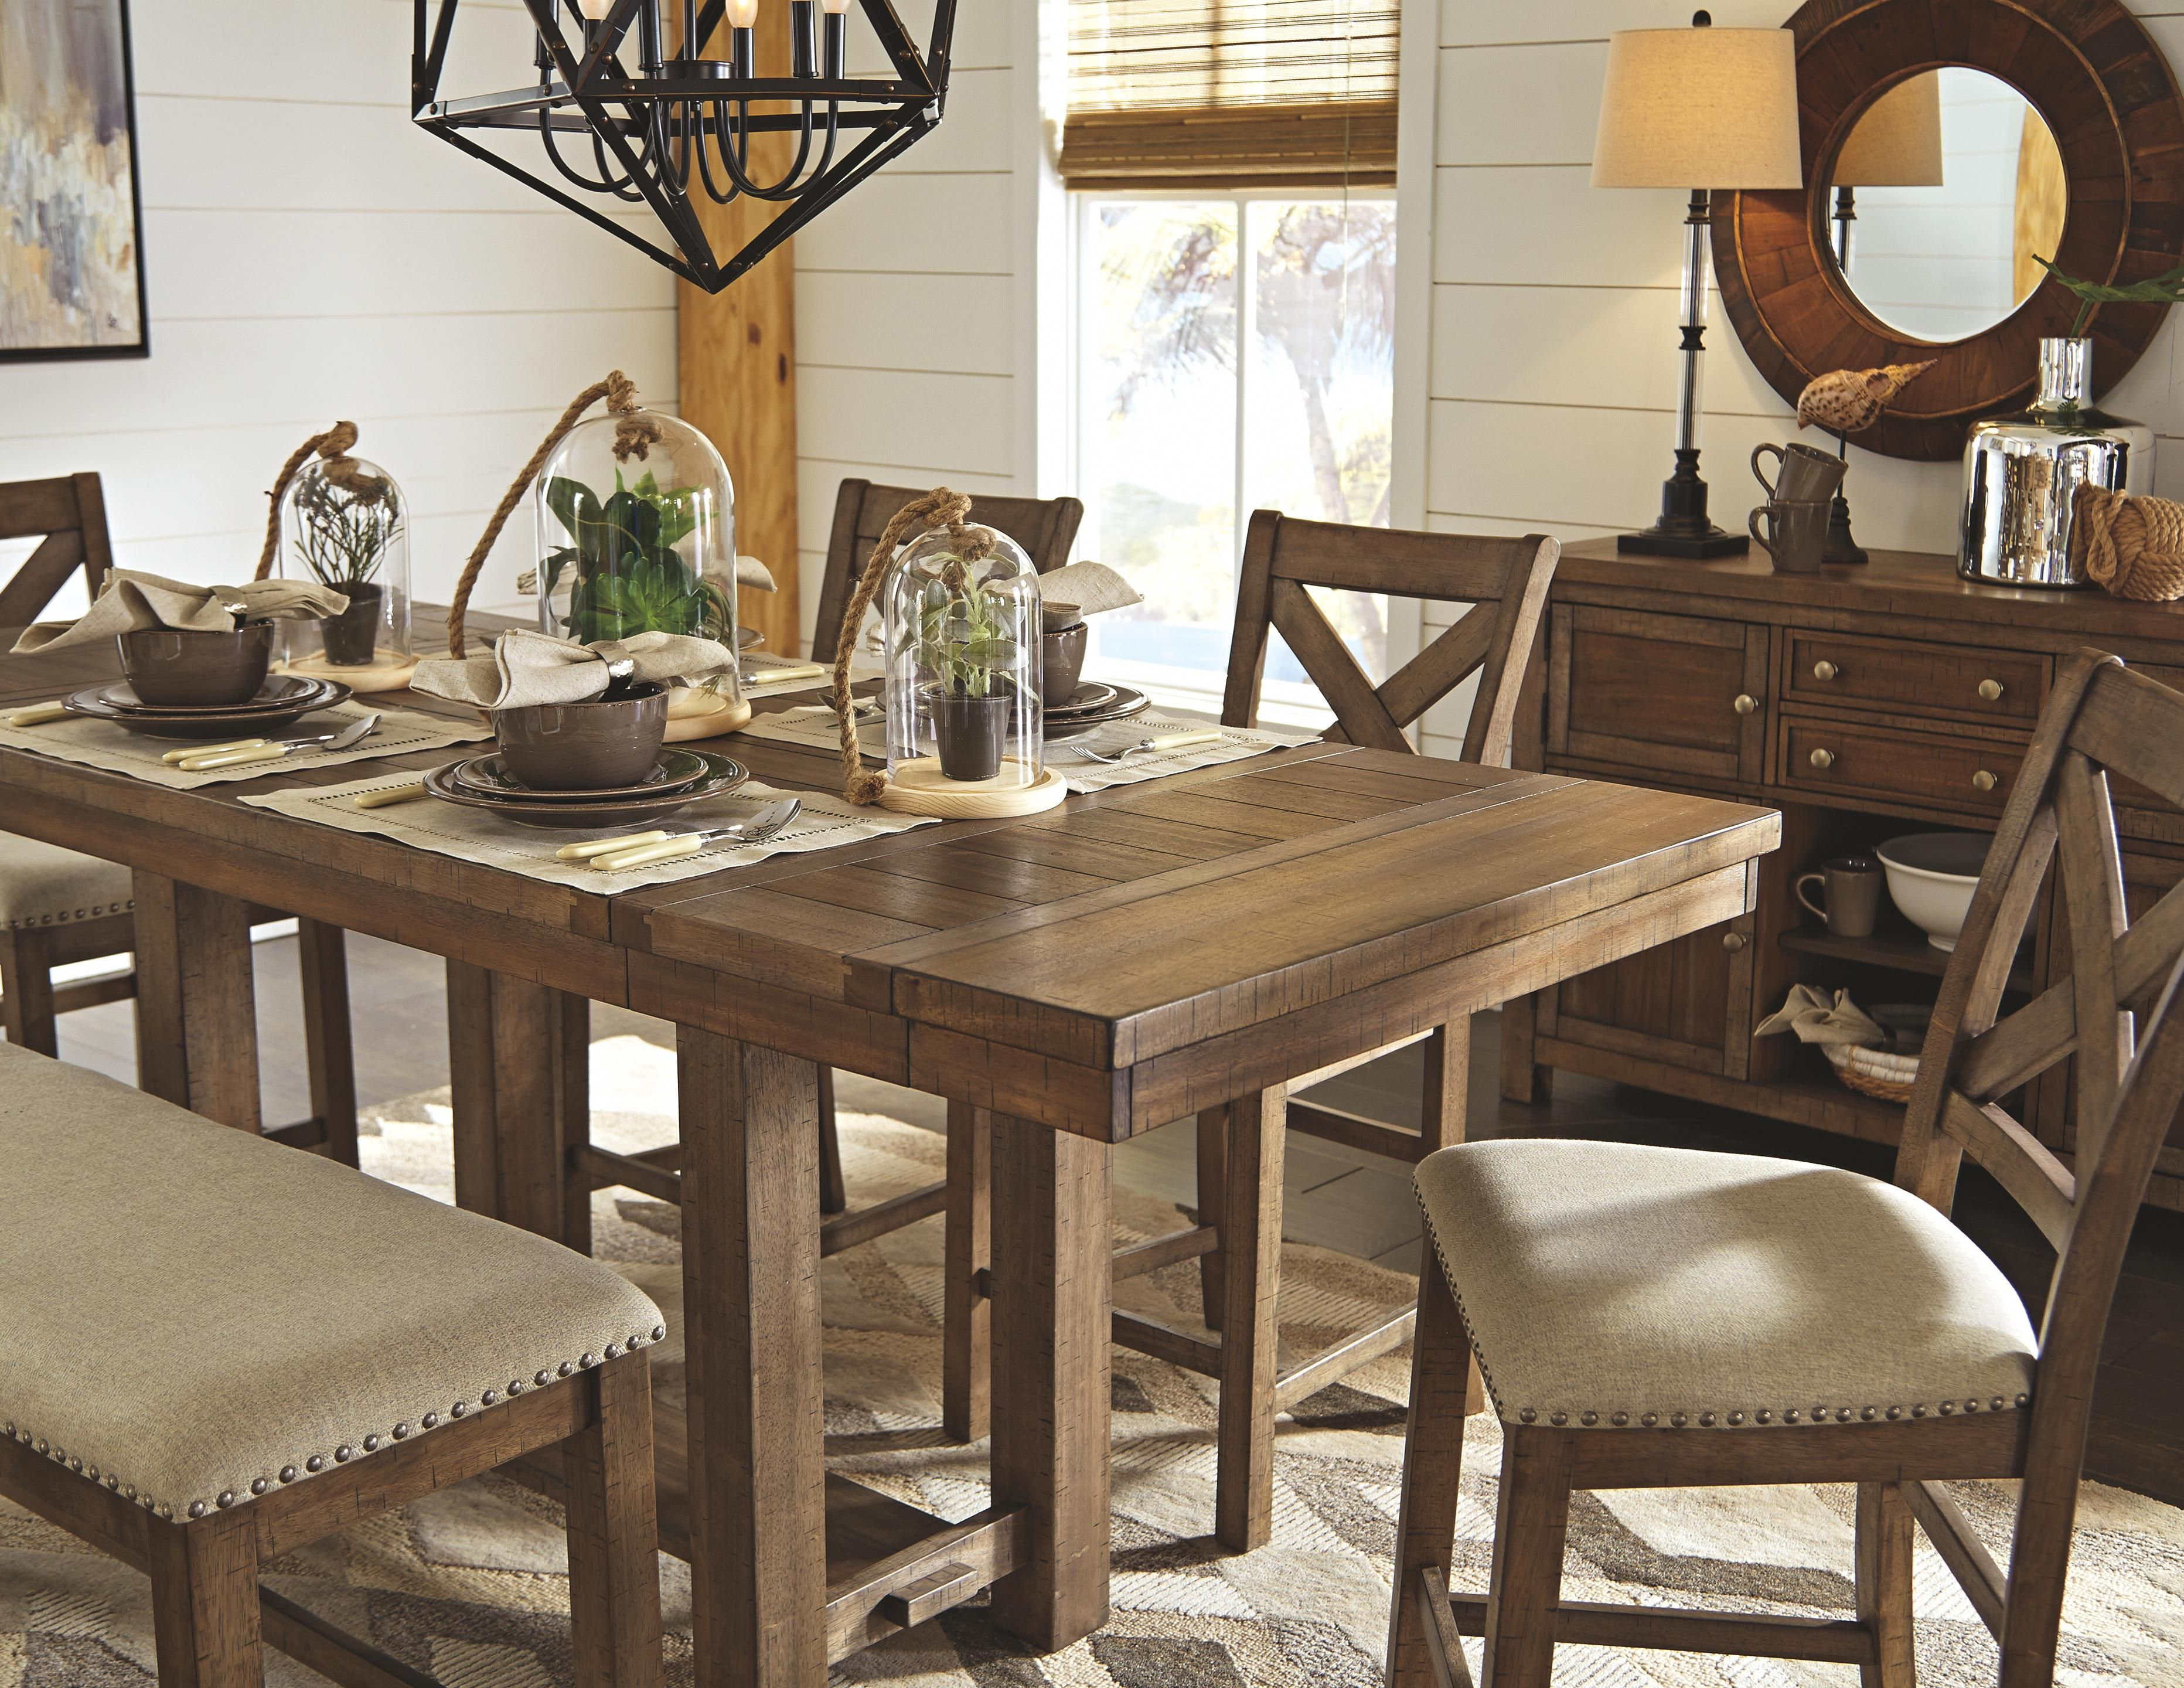 Another Space Saving Choice Is To Buy Rounded Dining Tables They